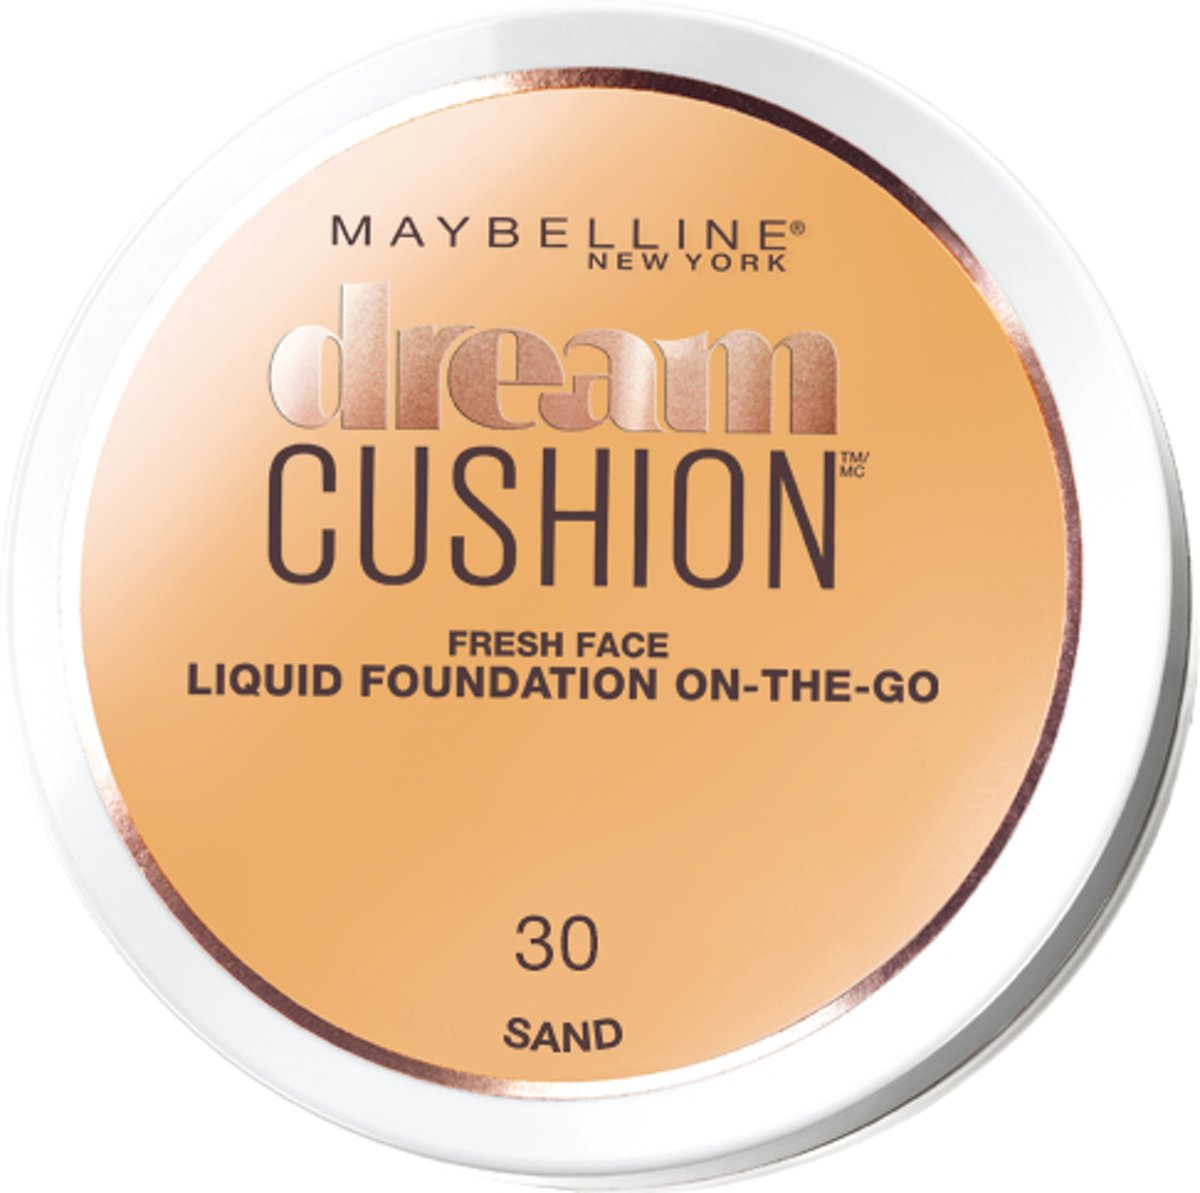 Maybelline Dream Cushion Foundation - 30 Sand - Foundation